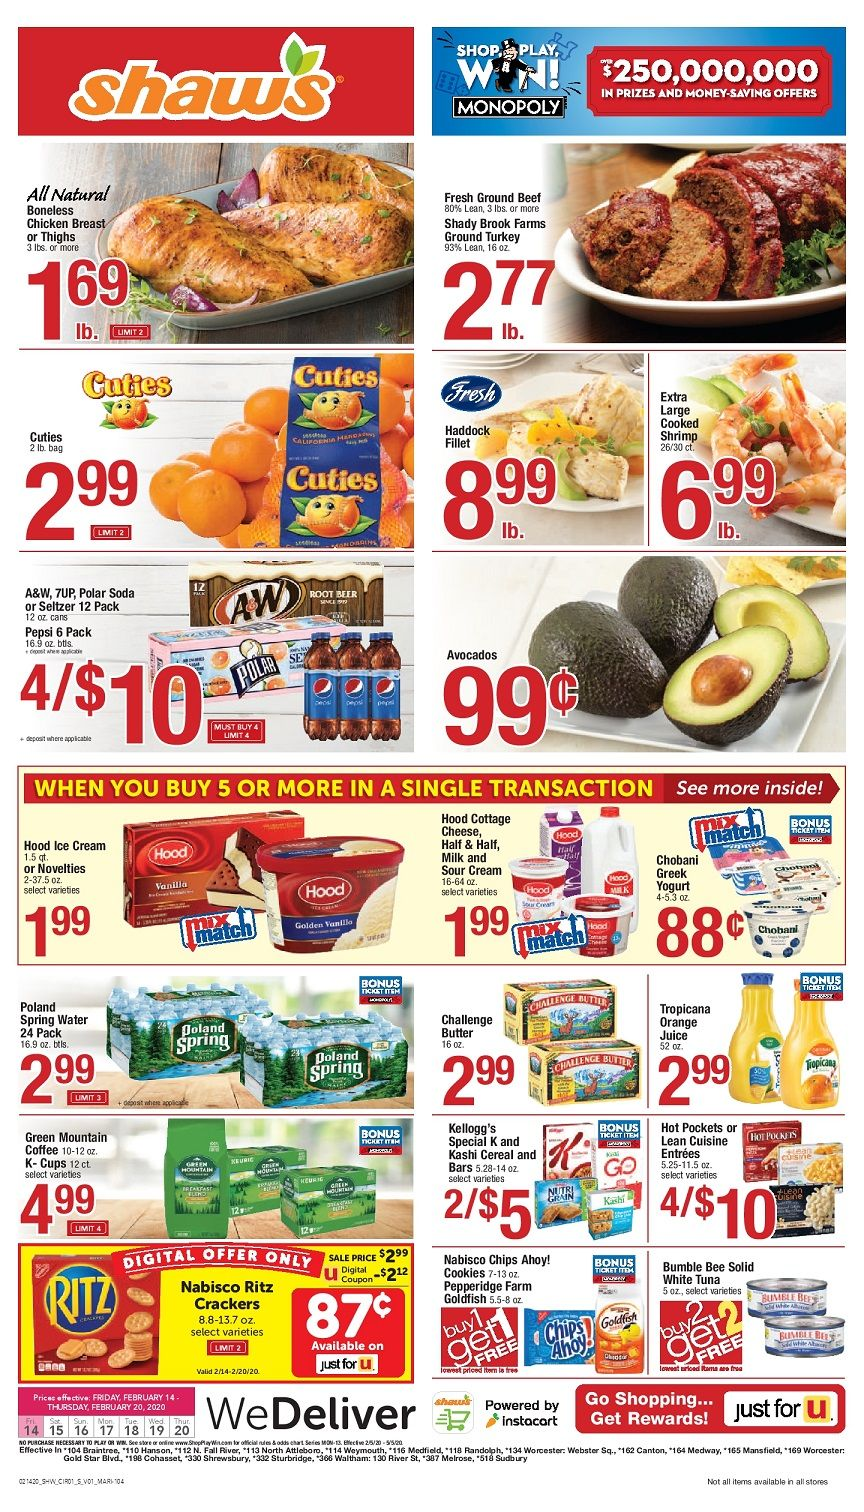 Shaw's Weekly ad Flyer Valid February 28 March 5, 2020